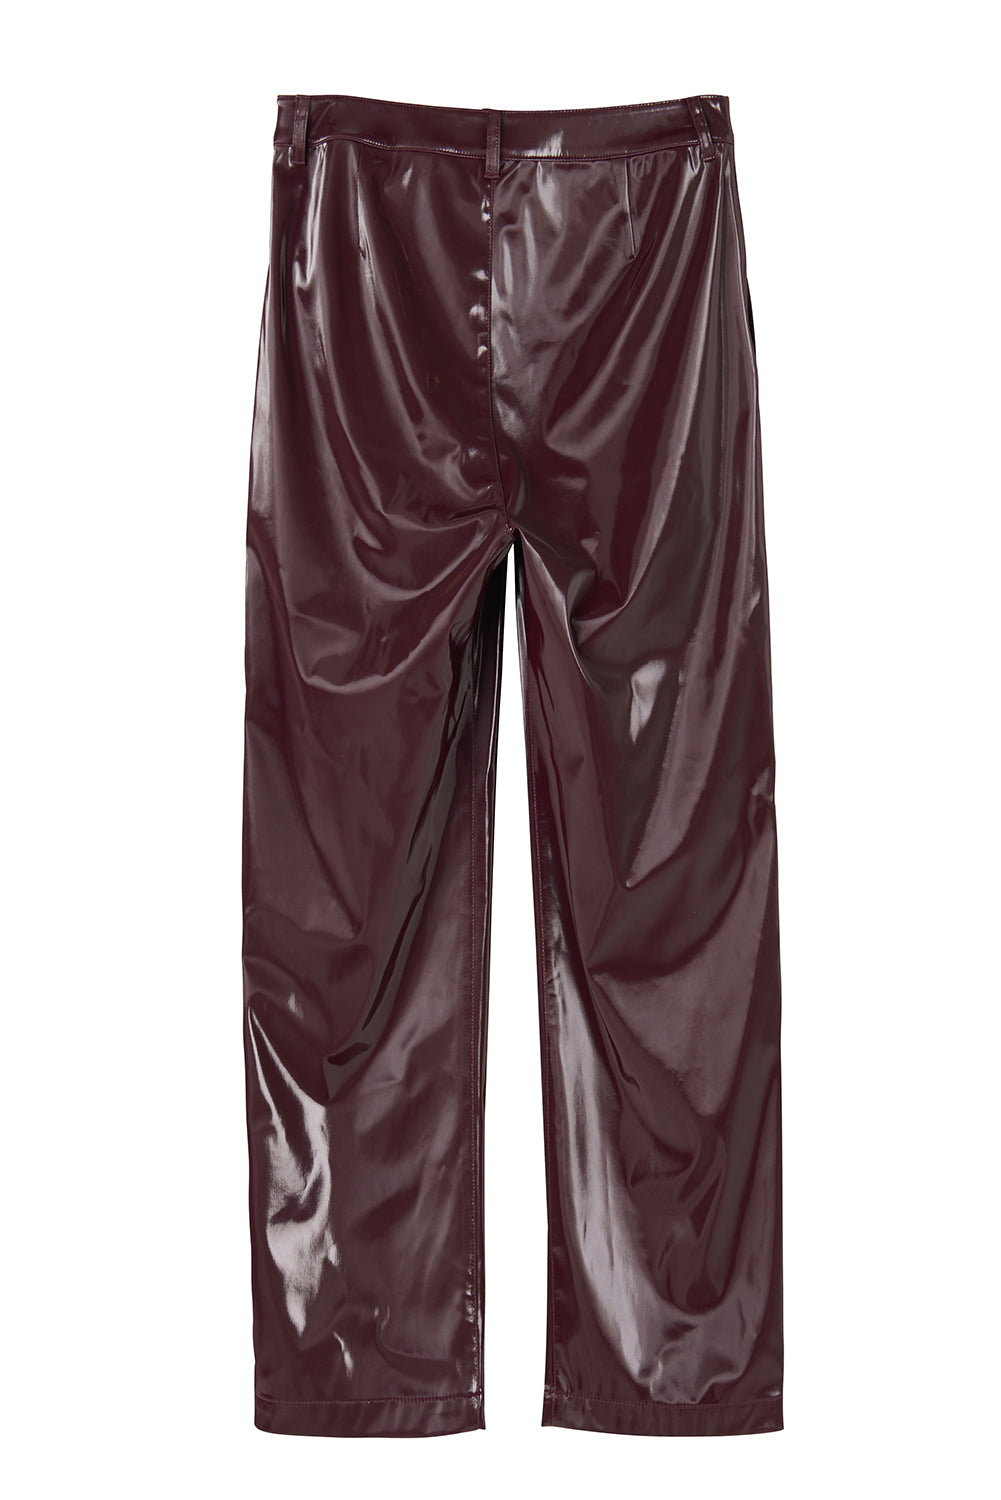 Cyndy Pants-Burgundy